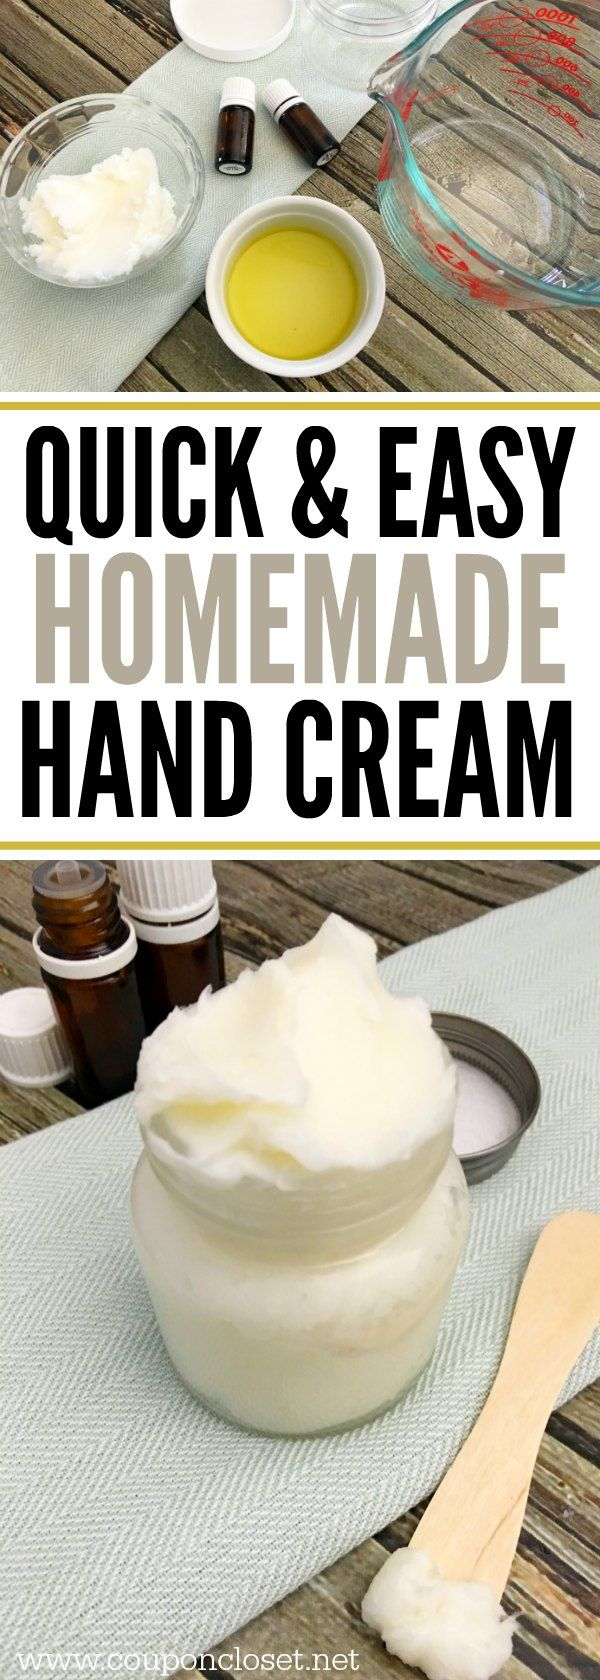 Homemade Hand Cream Quick And Easy Diy Hand Cream Hand Cream Homemade Diy Hand Cream Hand Cream